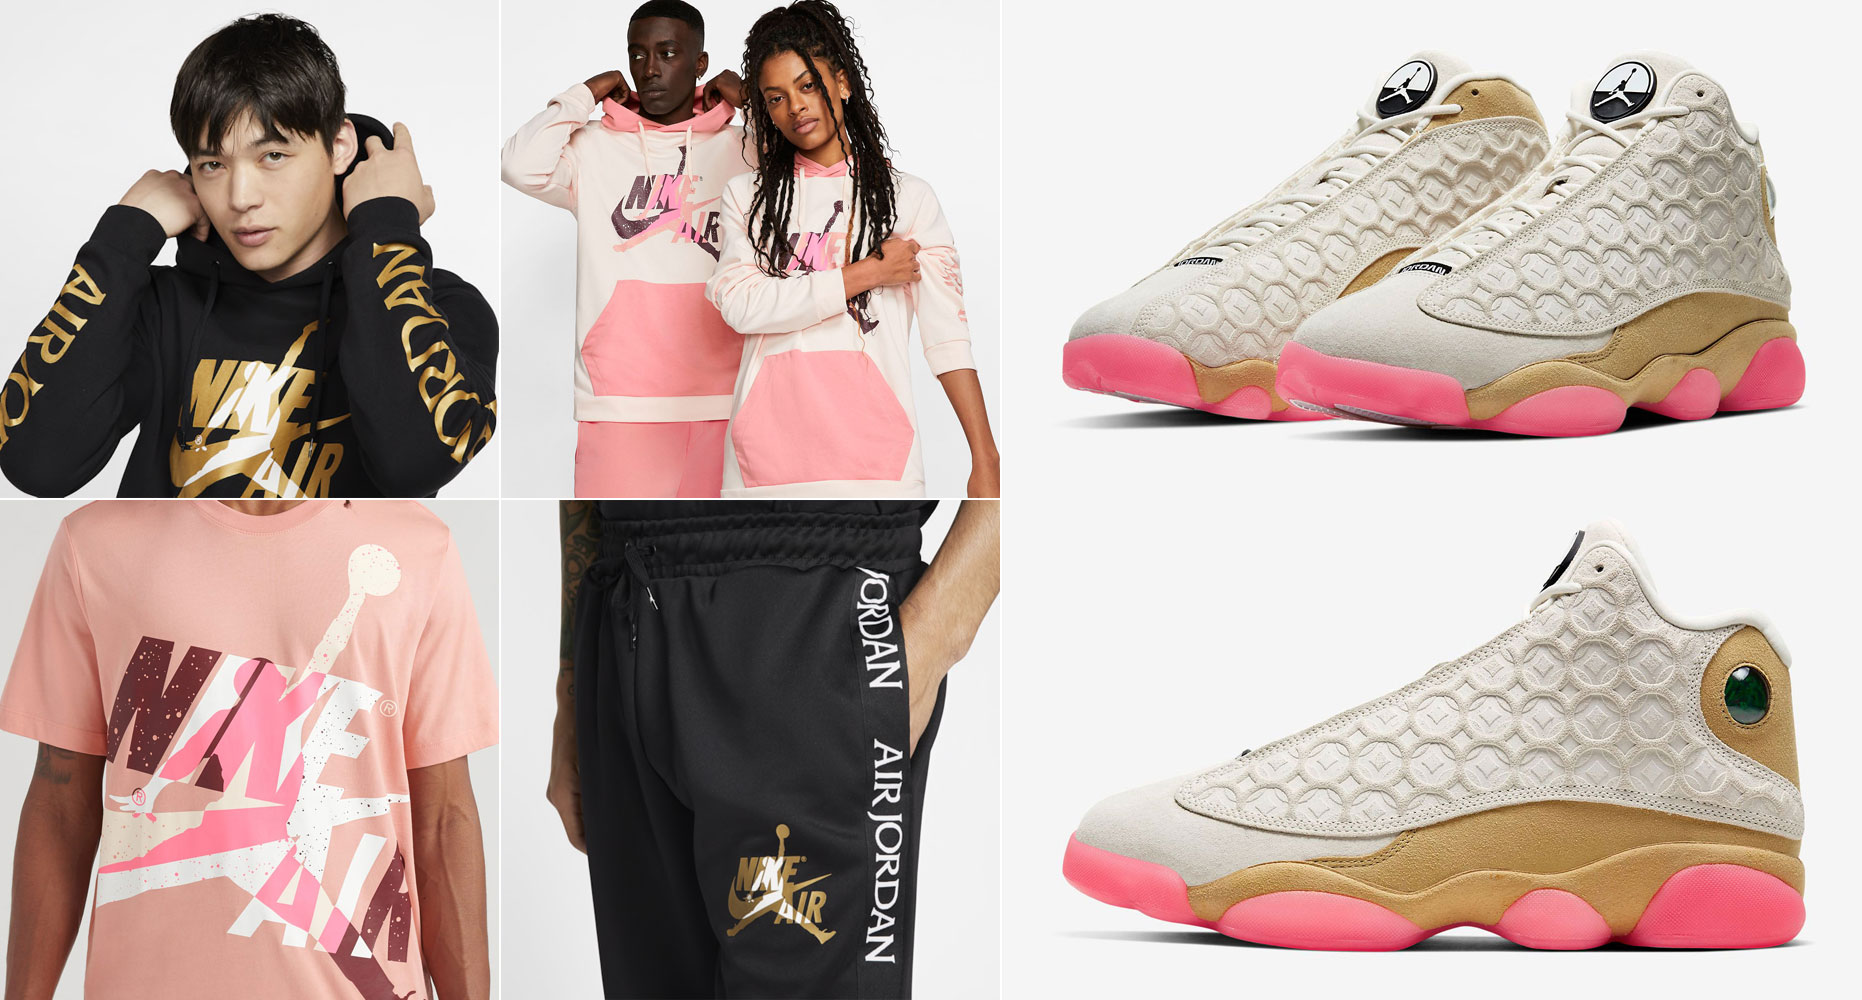 Air Jordan 13 Cny Chinese New Year Outfits Sneakerfits Com